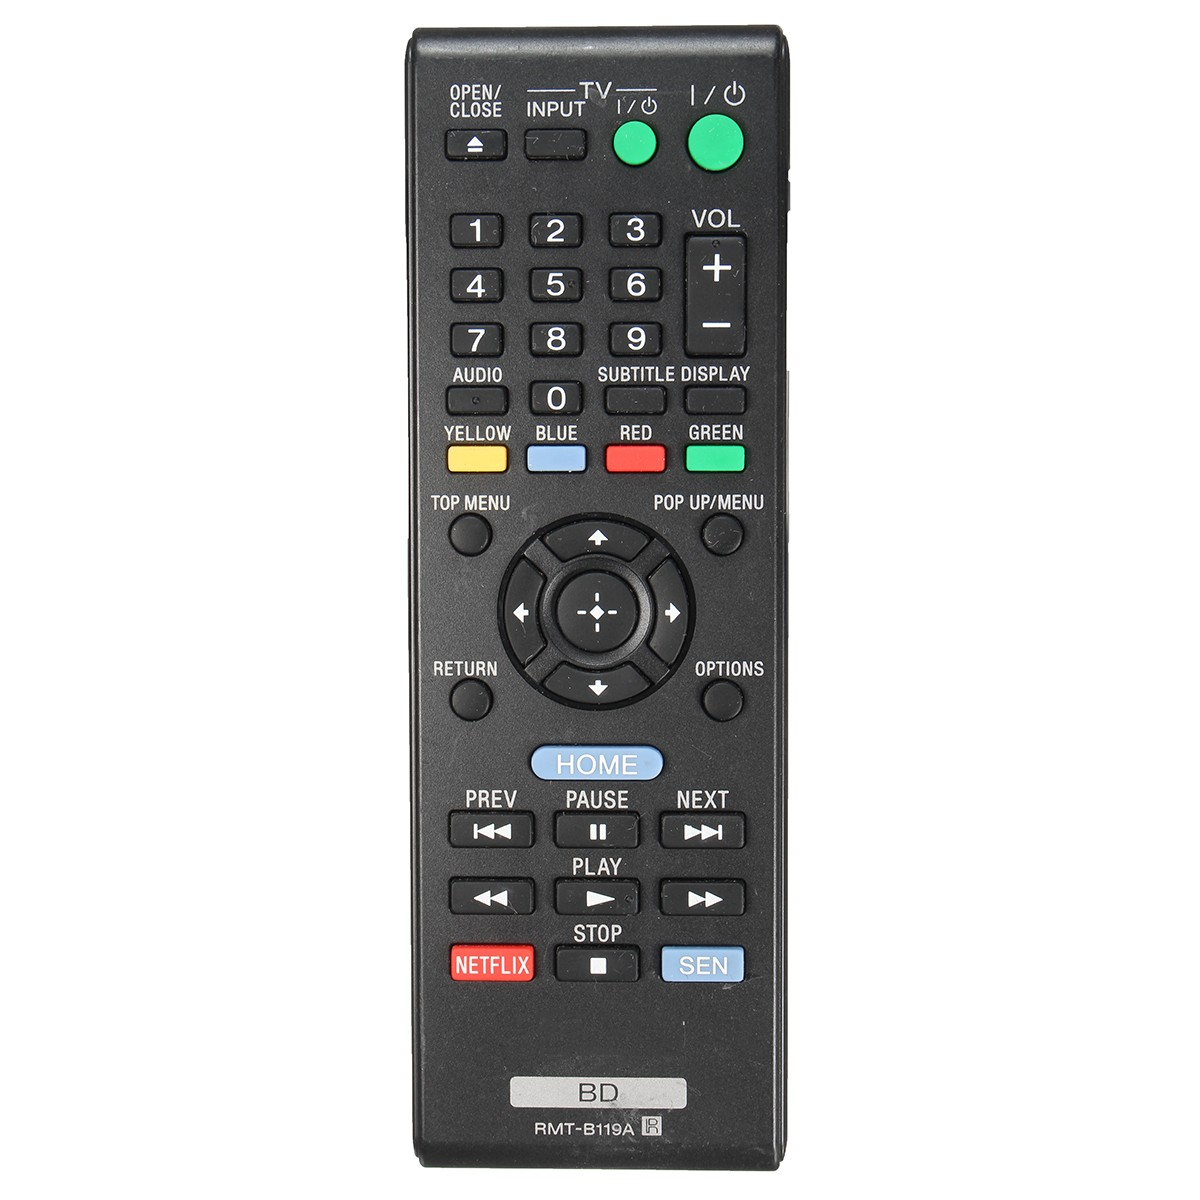 Blu-ray Remote Control RMT-B119A fit for Sony BDP-BX59 BDP-S390 BDP-S590